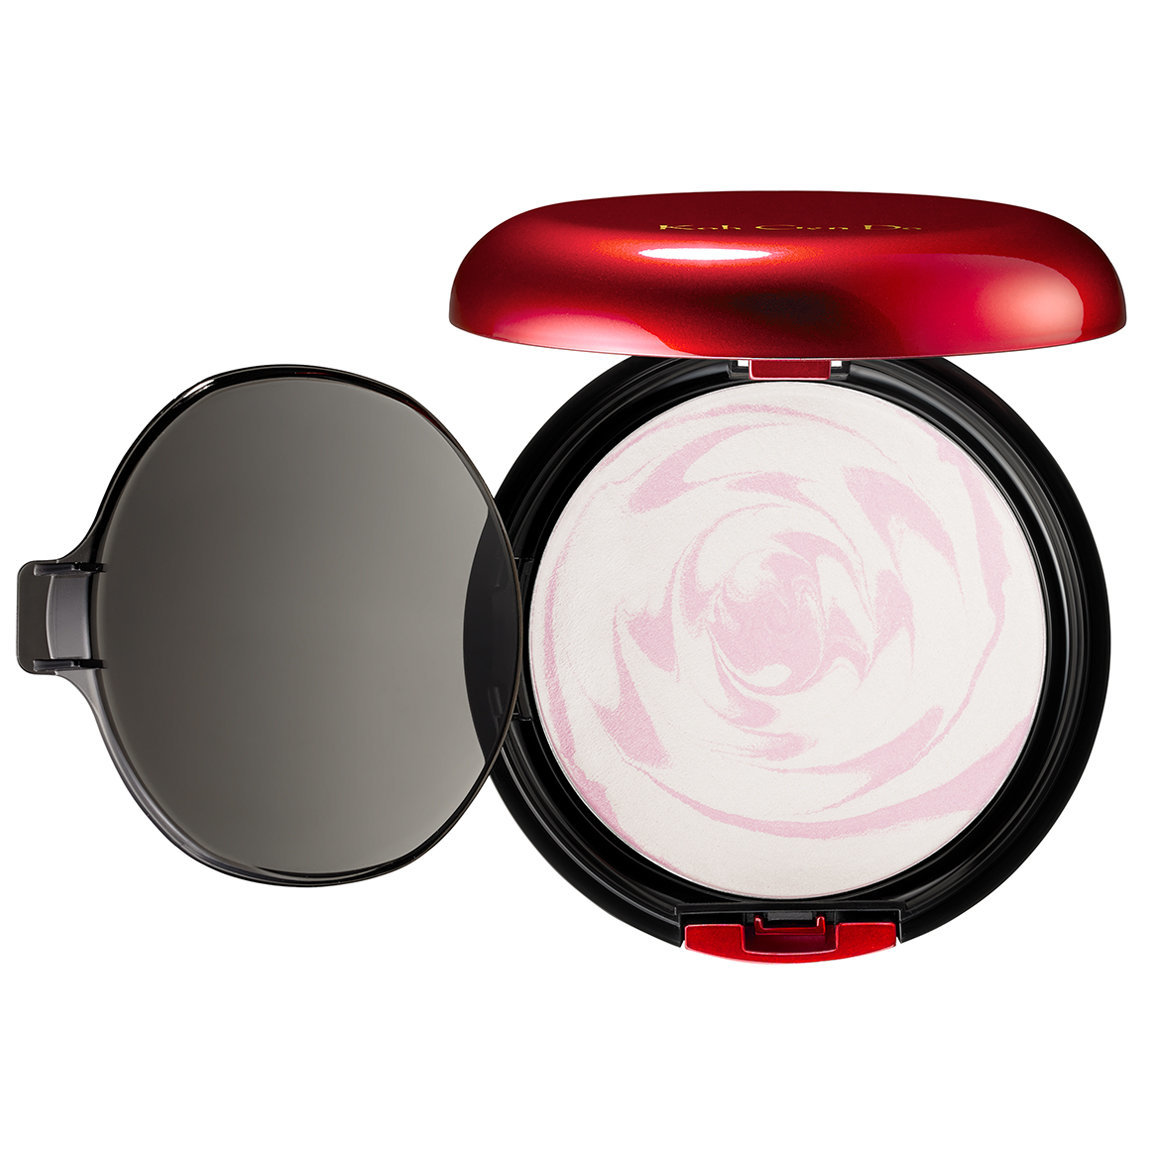 Koh Gen Do Brightening Moisture Powder Brightening Pink alternative view 1 - product swatch.